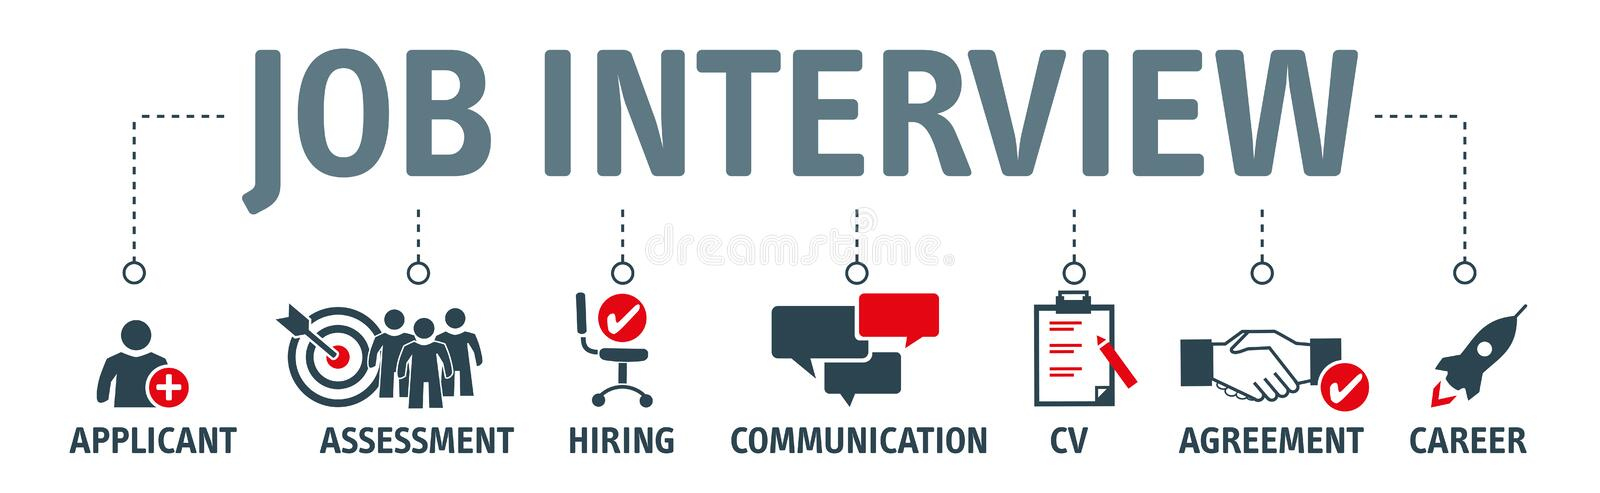 Job interview concept with business icons royalty free illustration